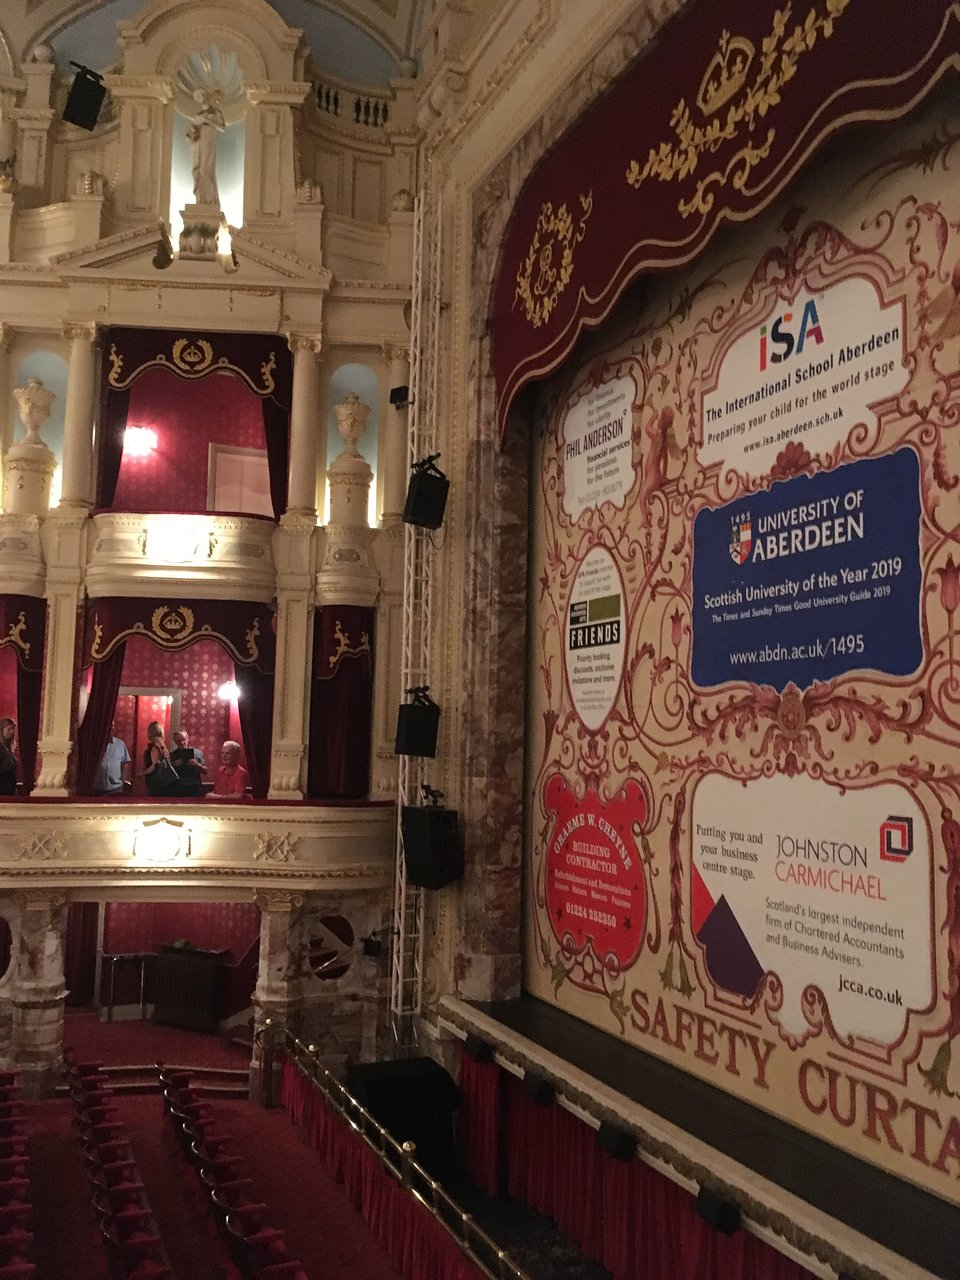 His Majesty S Theatre Hmt Aberdeen 2021 All You Need To Know Before You Go With Photos Aberdeen Scotland Tripadvisor